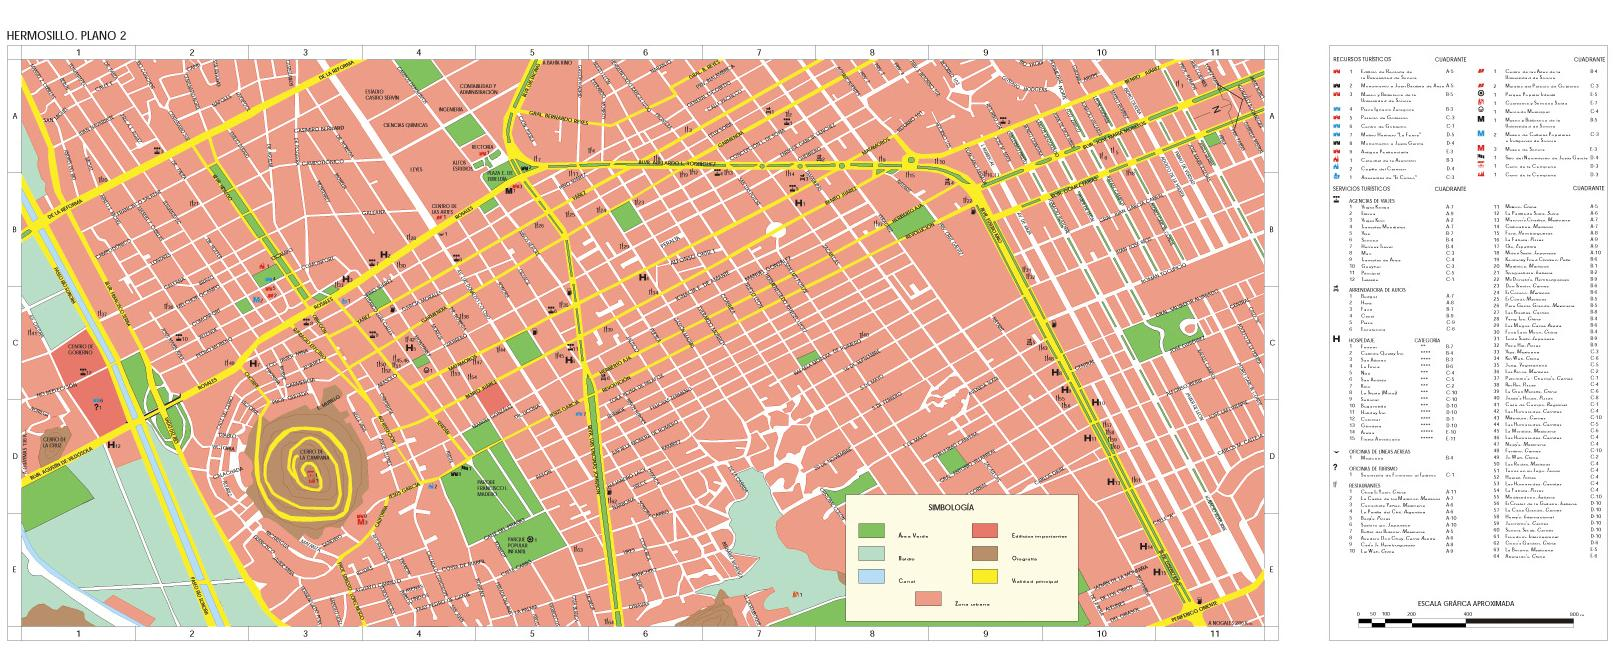 Hermosillo (Downtown) Map, Sonora, Mexico